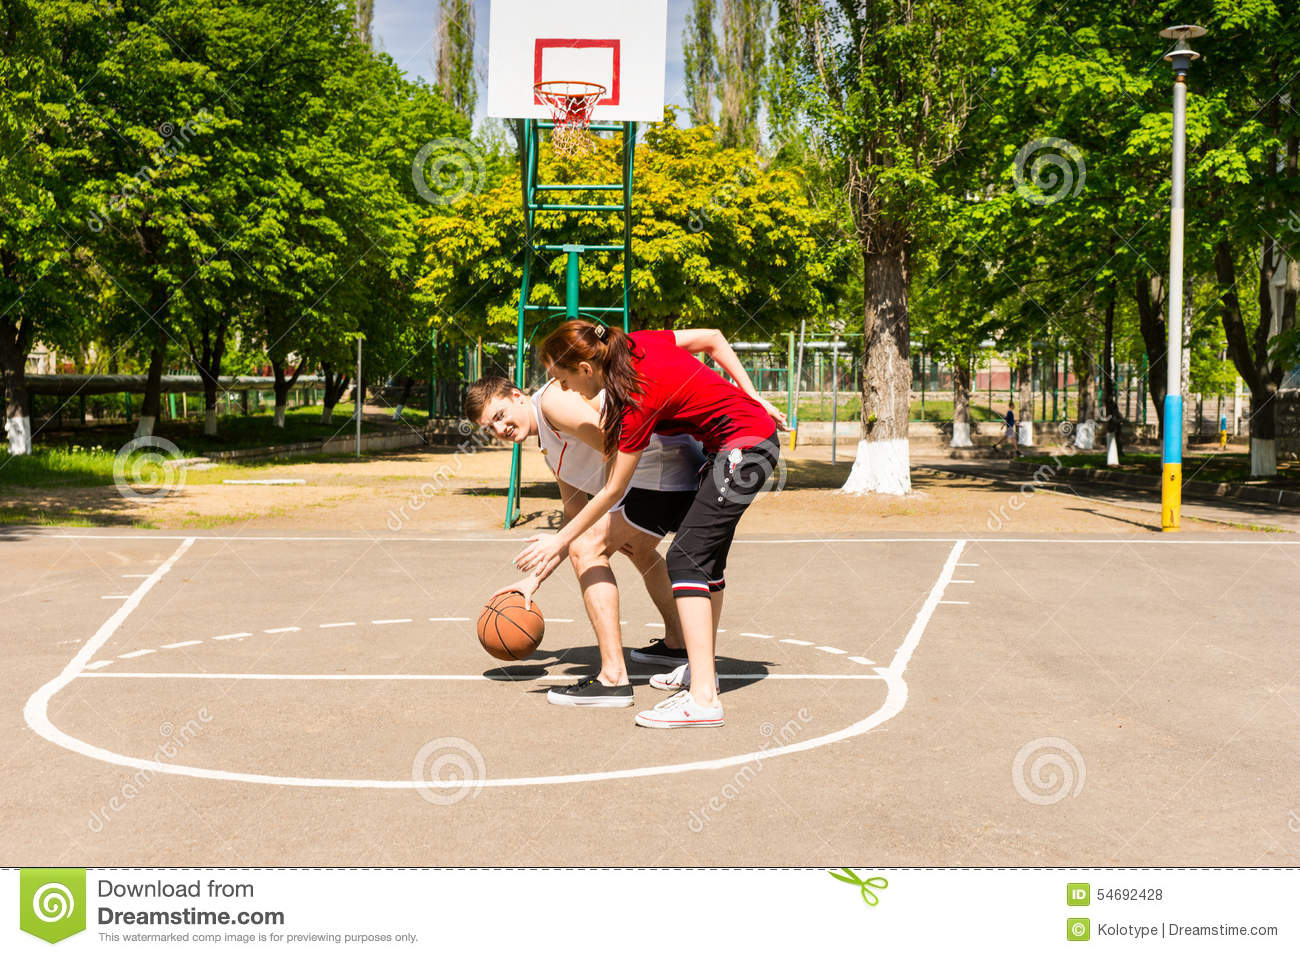 Couple Playing Basketball On Outdoor Court Stock Photo Image Of